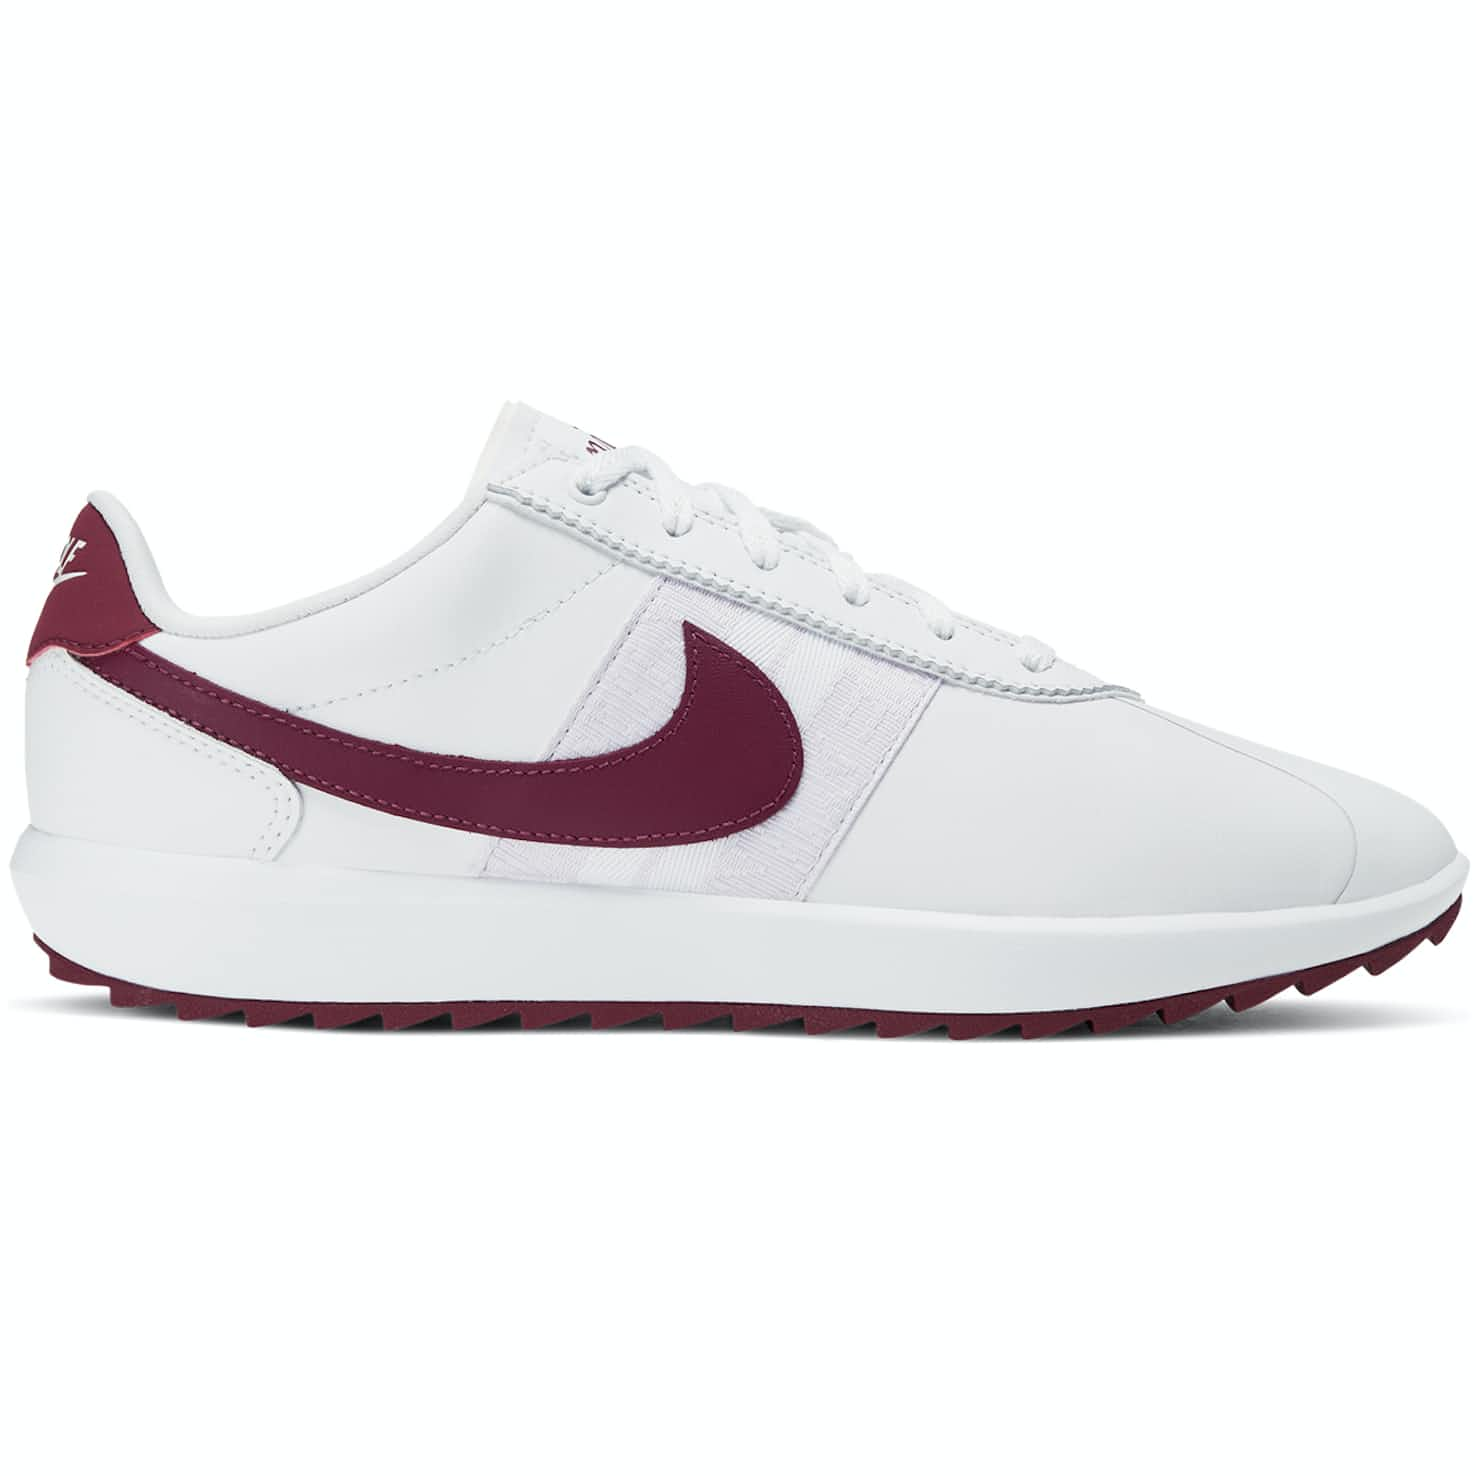 Womens Cortez Golf White/Villain Red/Barely Grape - SS20